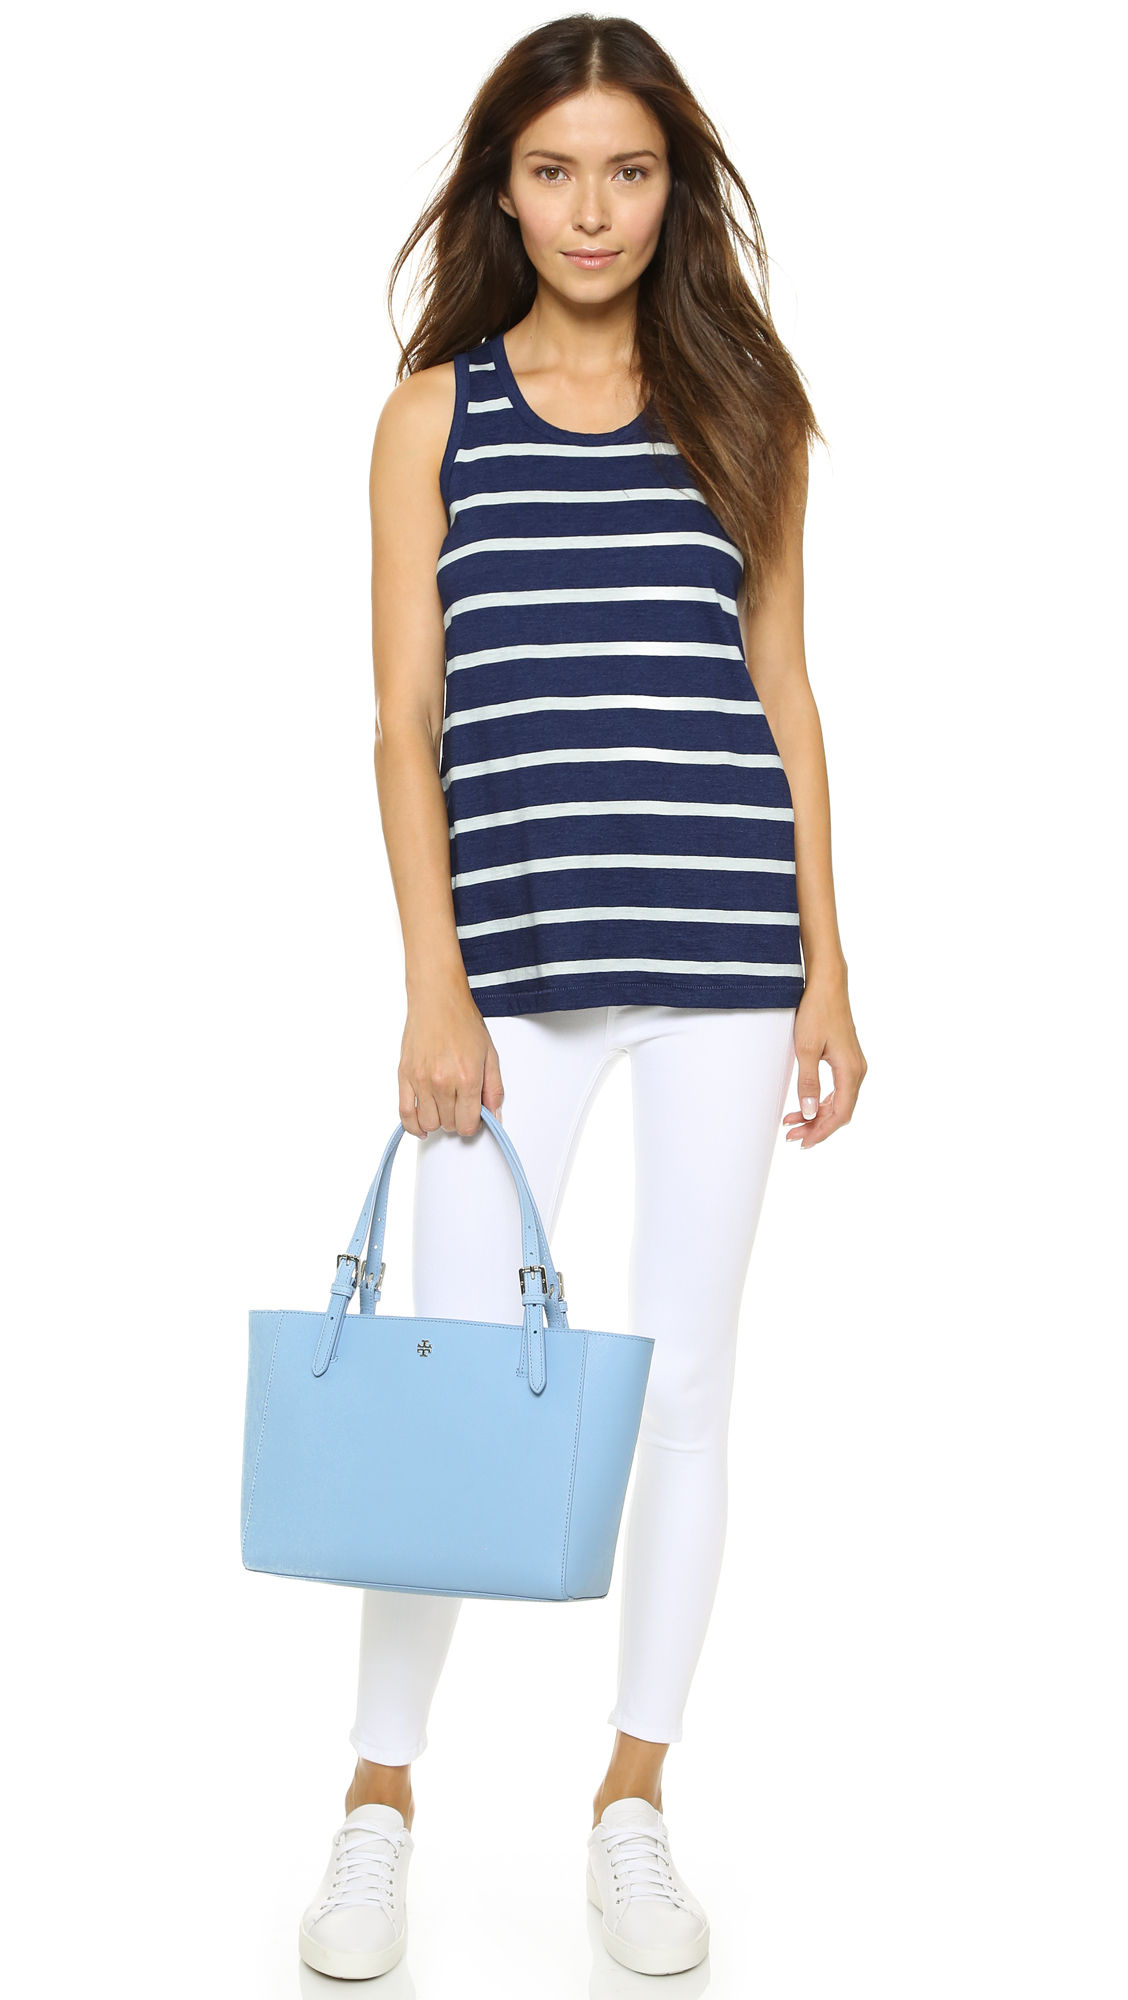 2bee86e31080b9 Lyst - Tory Burch York Small Buckle Tote in Blue